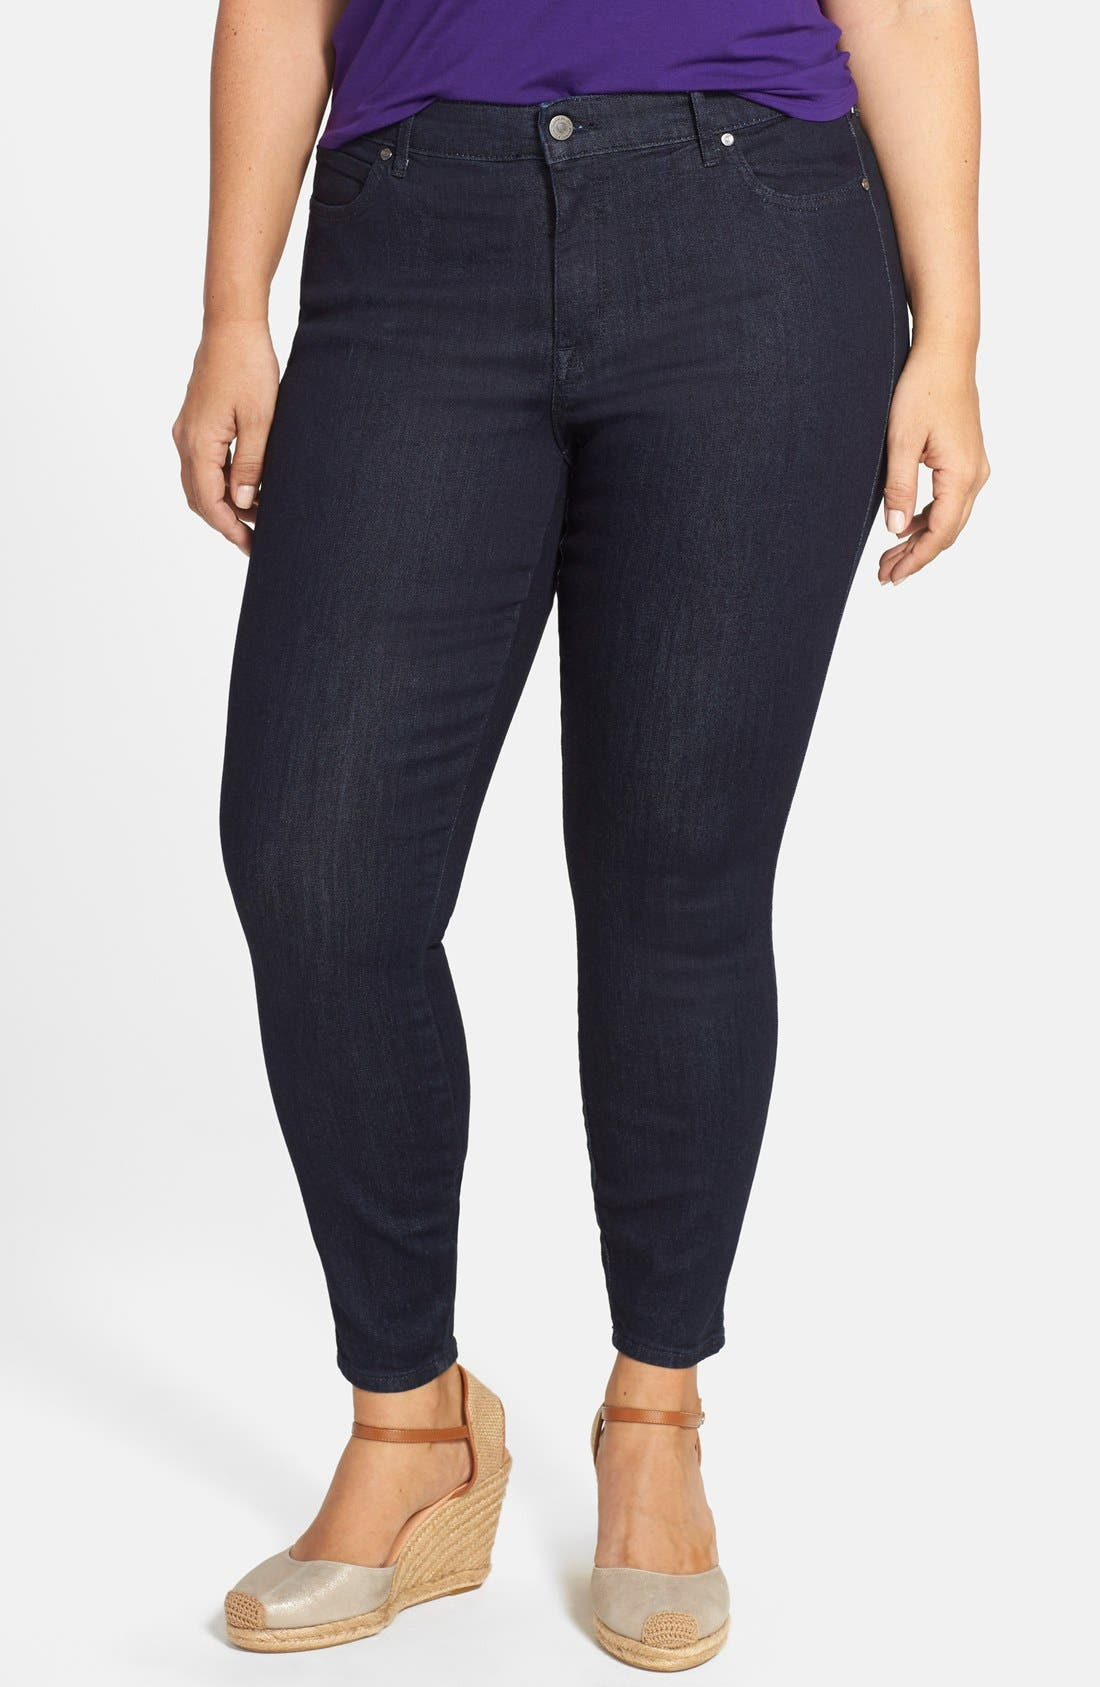 CJ BY COOKIE JOHNSON, 'Wisdom' Stretch Ankle Skinny Jeans, Main thumbnail 1, color, 400